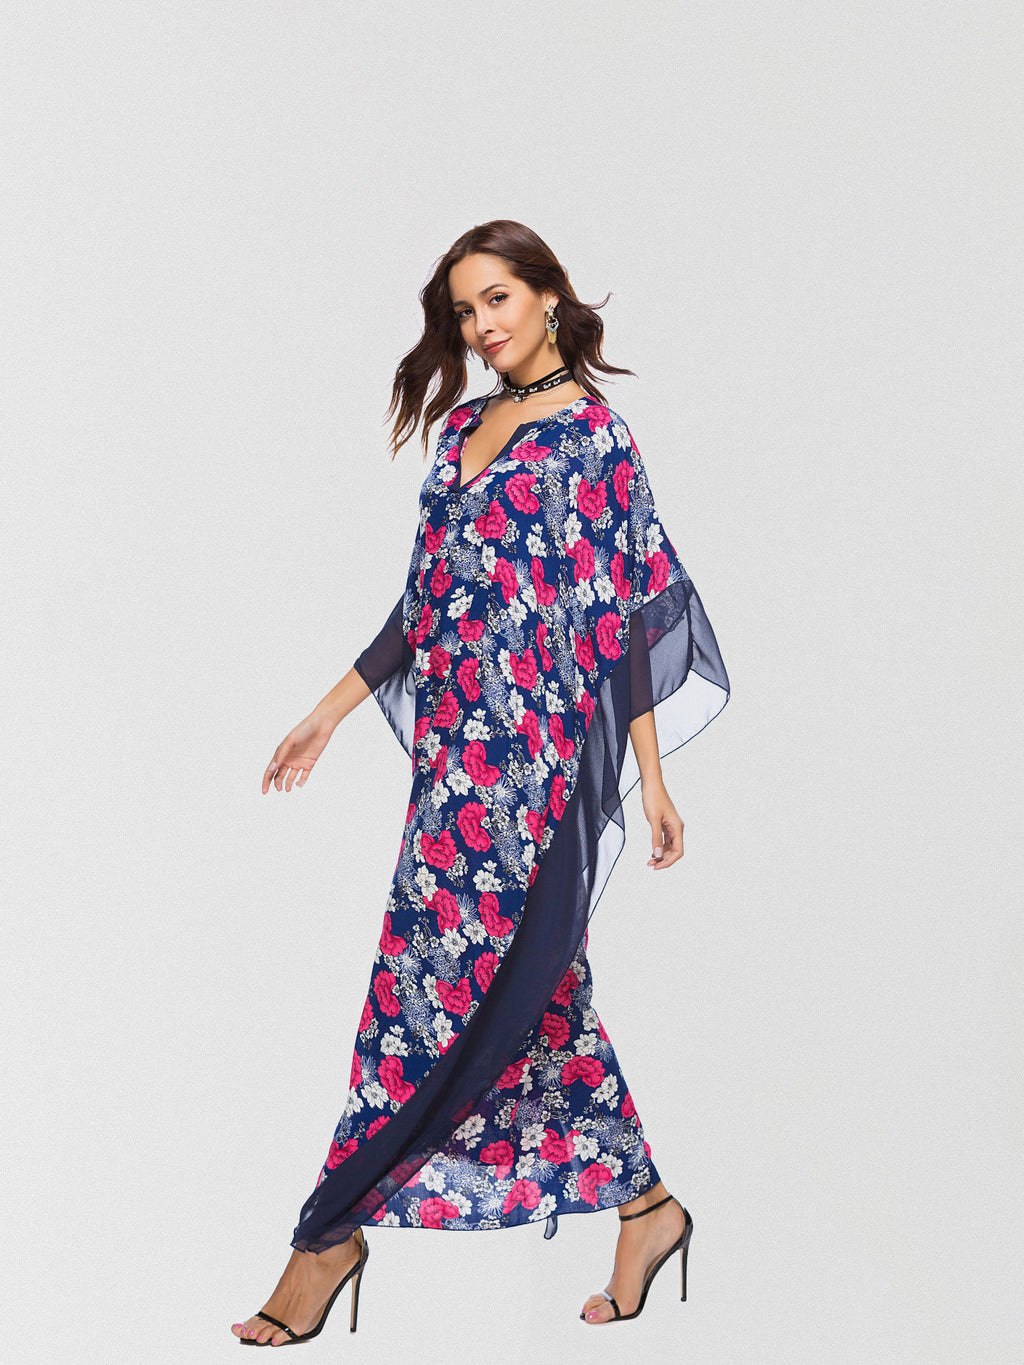 Floral printed maxi dress featured in a slouchy silhouette and exaggerated batwing sleeves